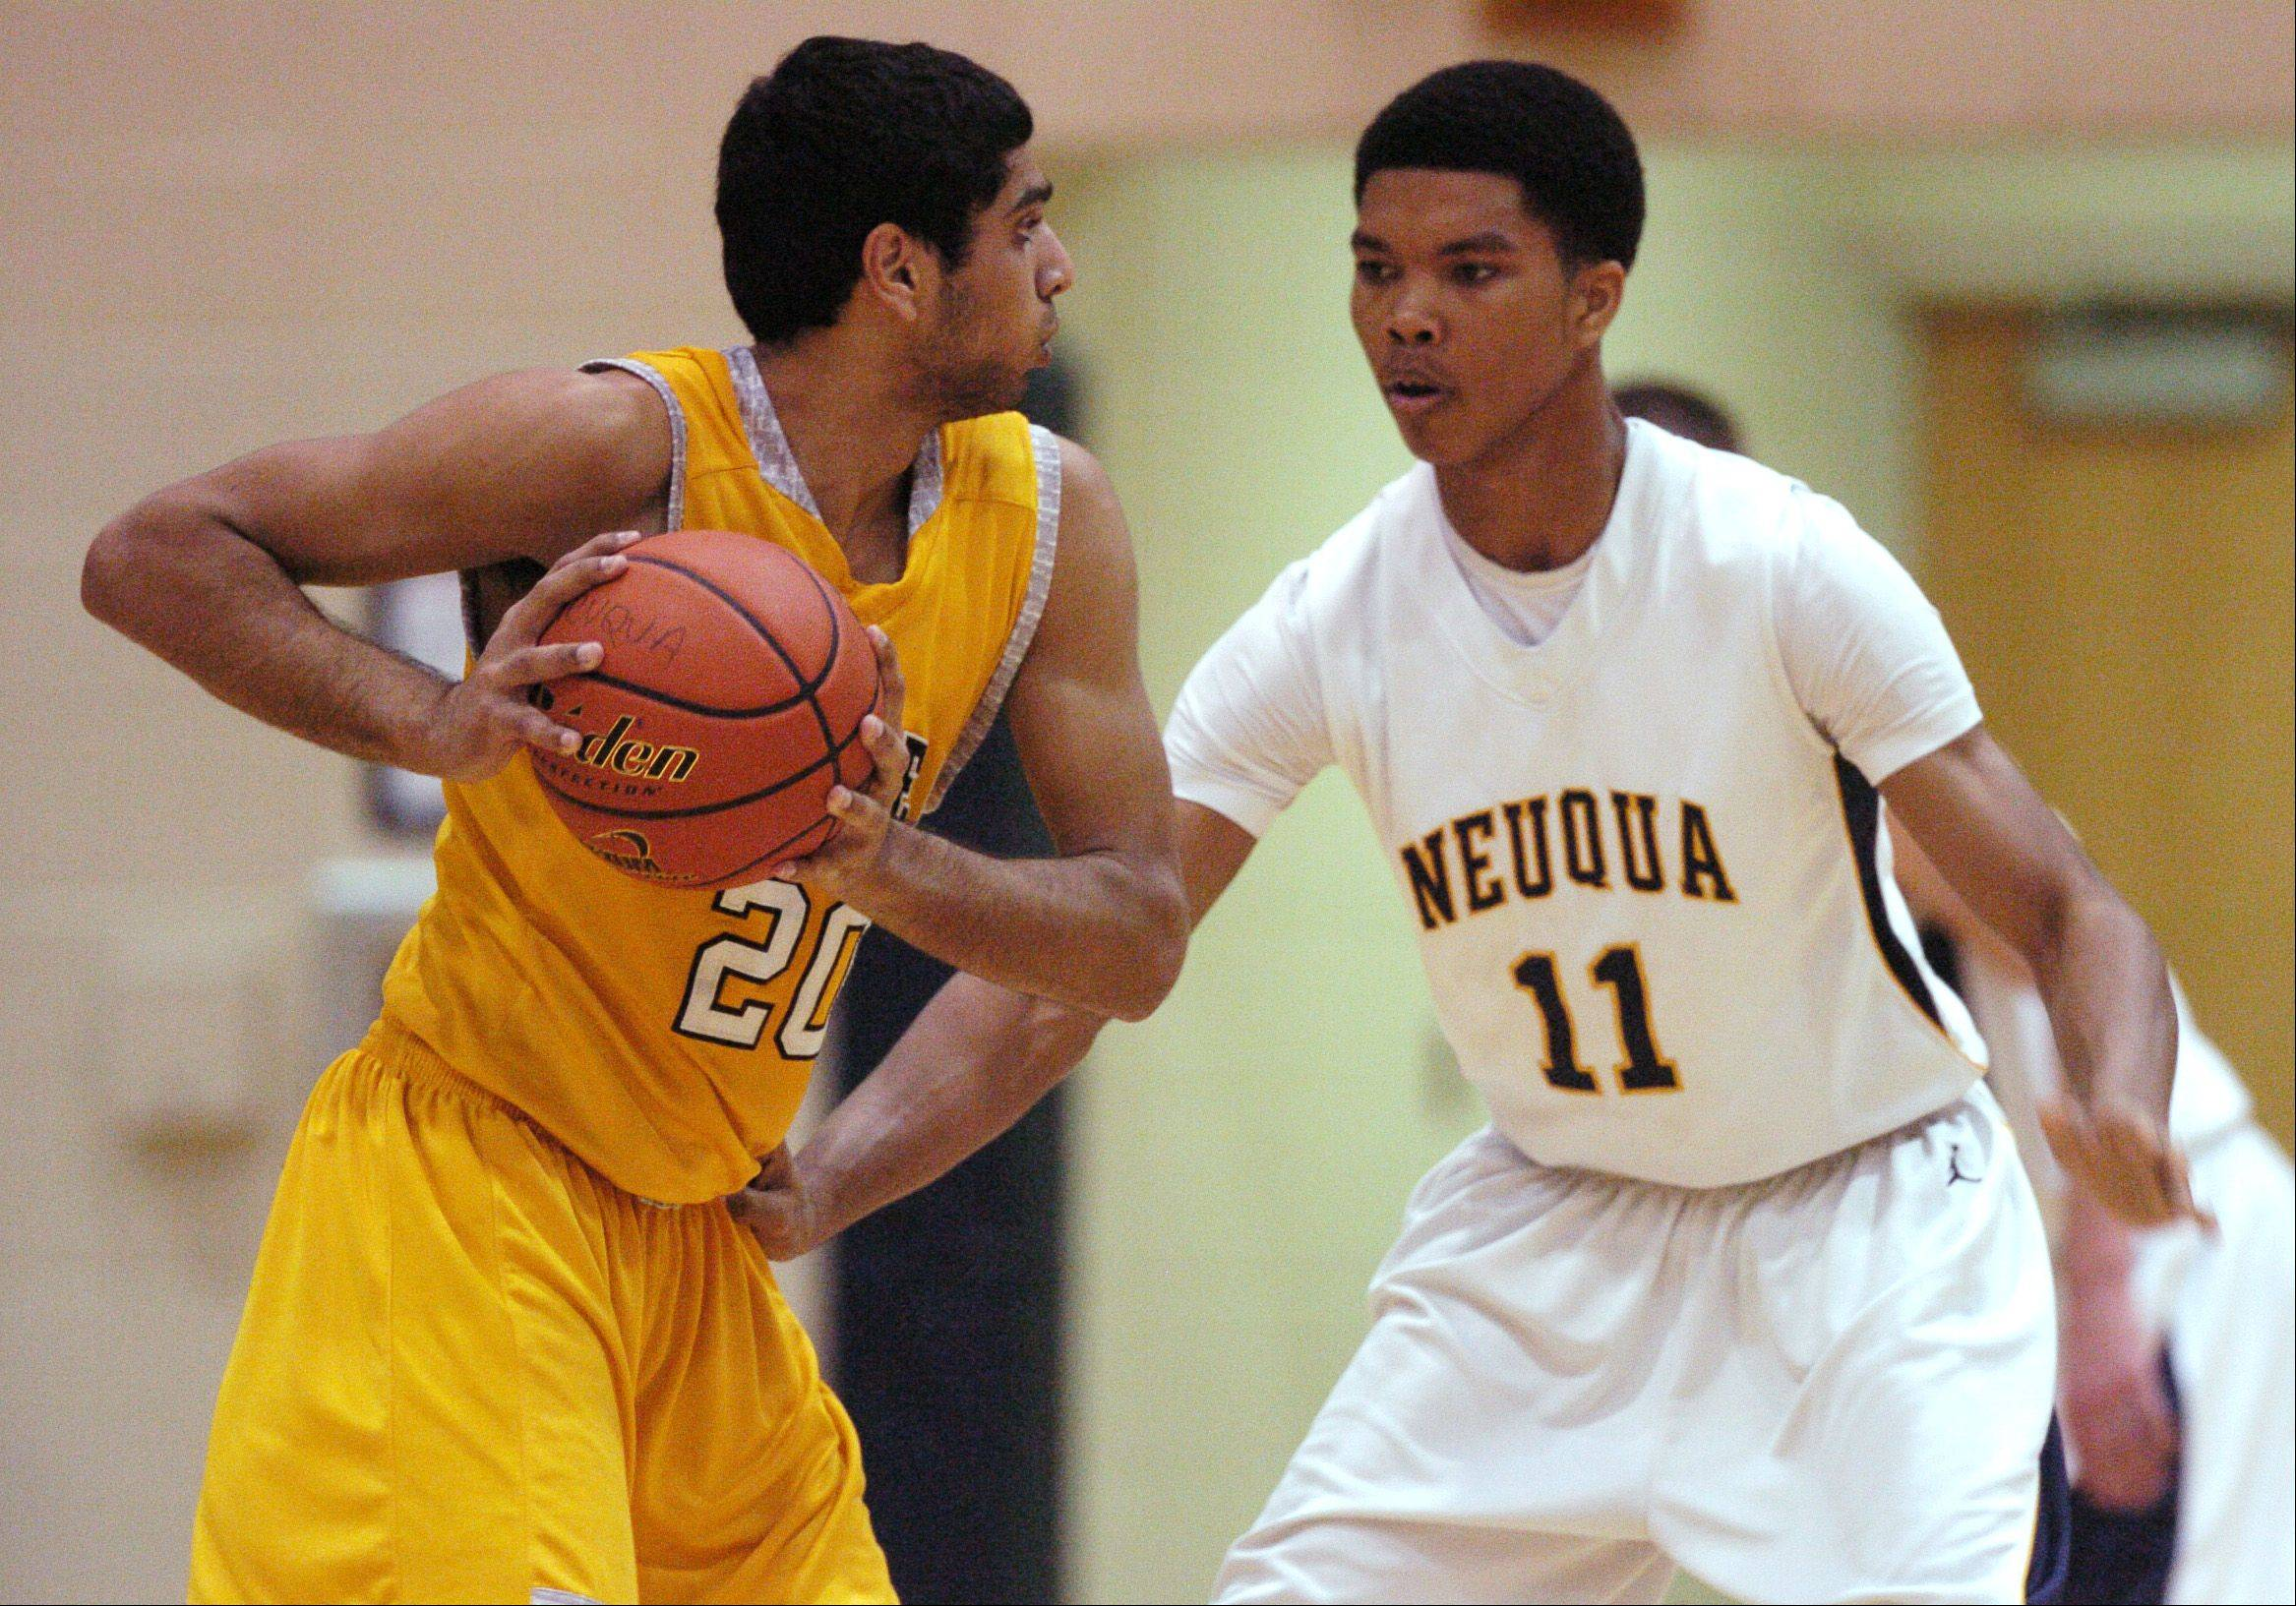 Vin Patel of Metea Valley looks to pass around Zach Pugh of Neuqua Valley.